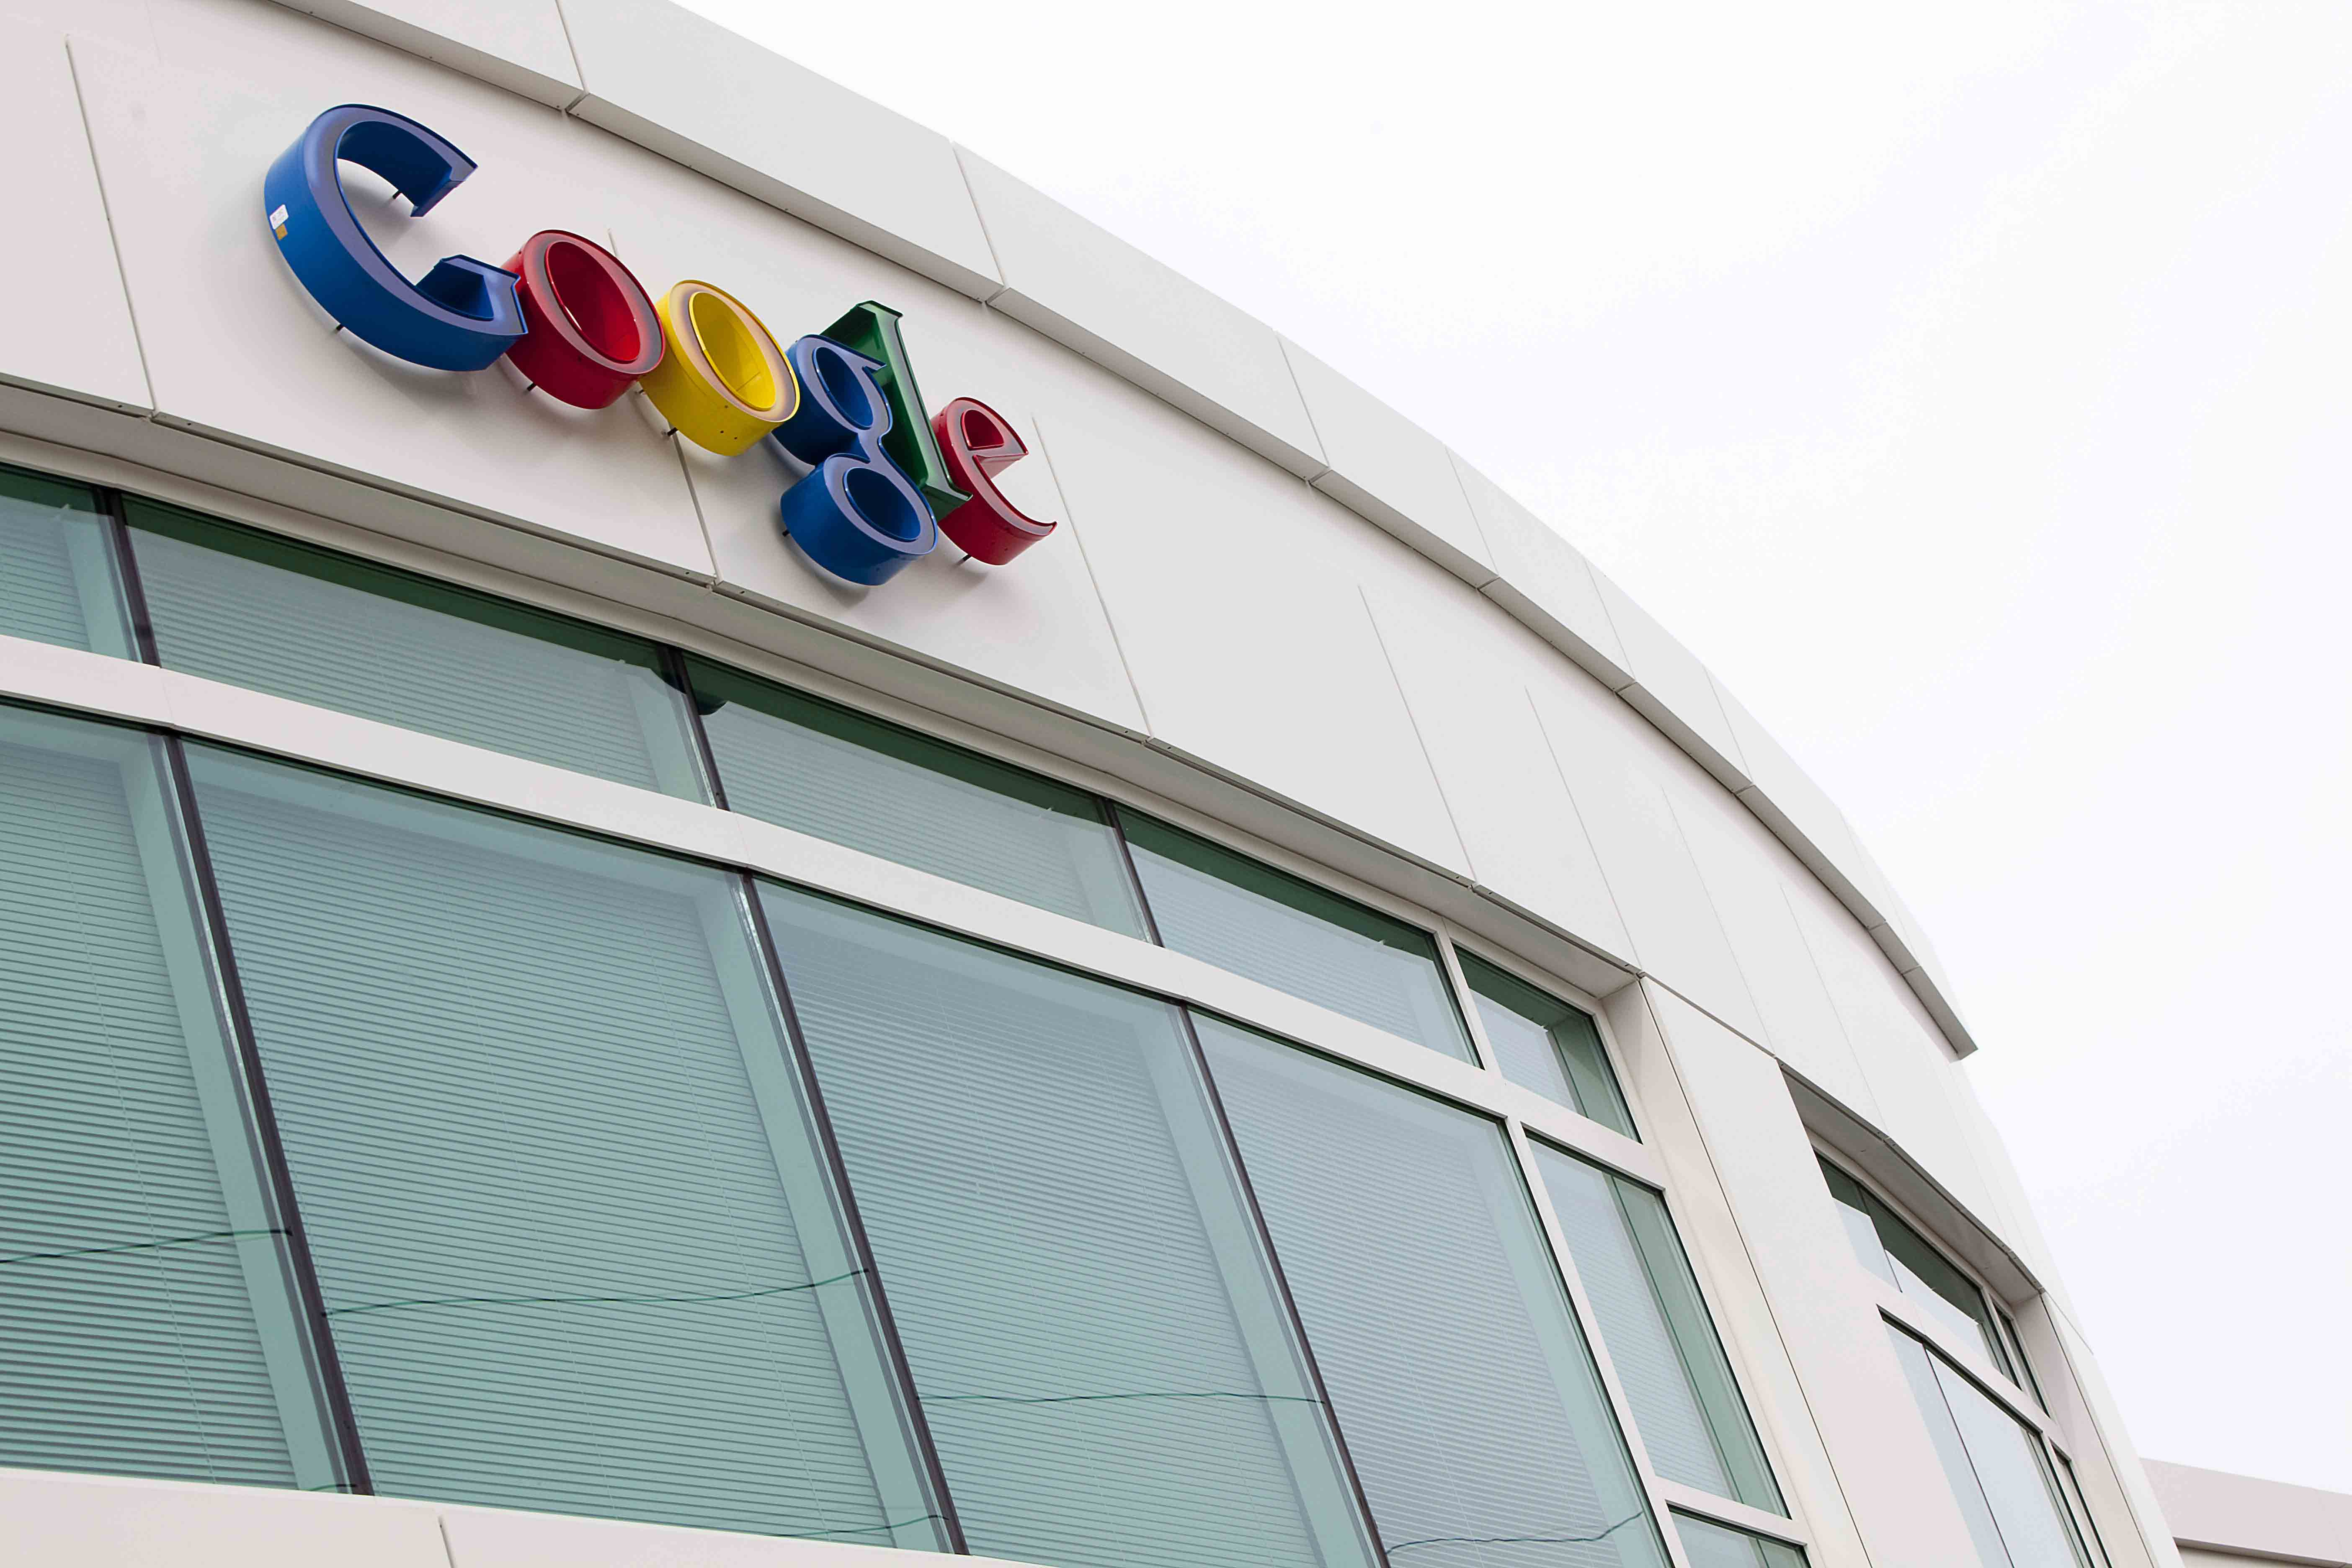 The Mountain View-based company announced that Craig Barratt, a veteran tech executive who led the ambitious - and expensive - Google Fiber program, is stepping down as CEO of Access, the division of Google corporate parent, Alphabet Inc., that operates the 5-year-old program.